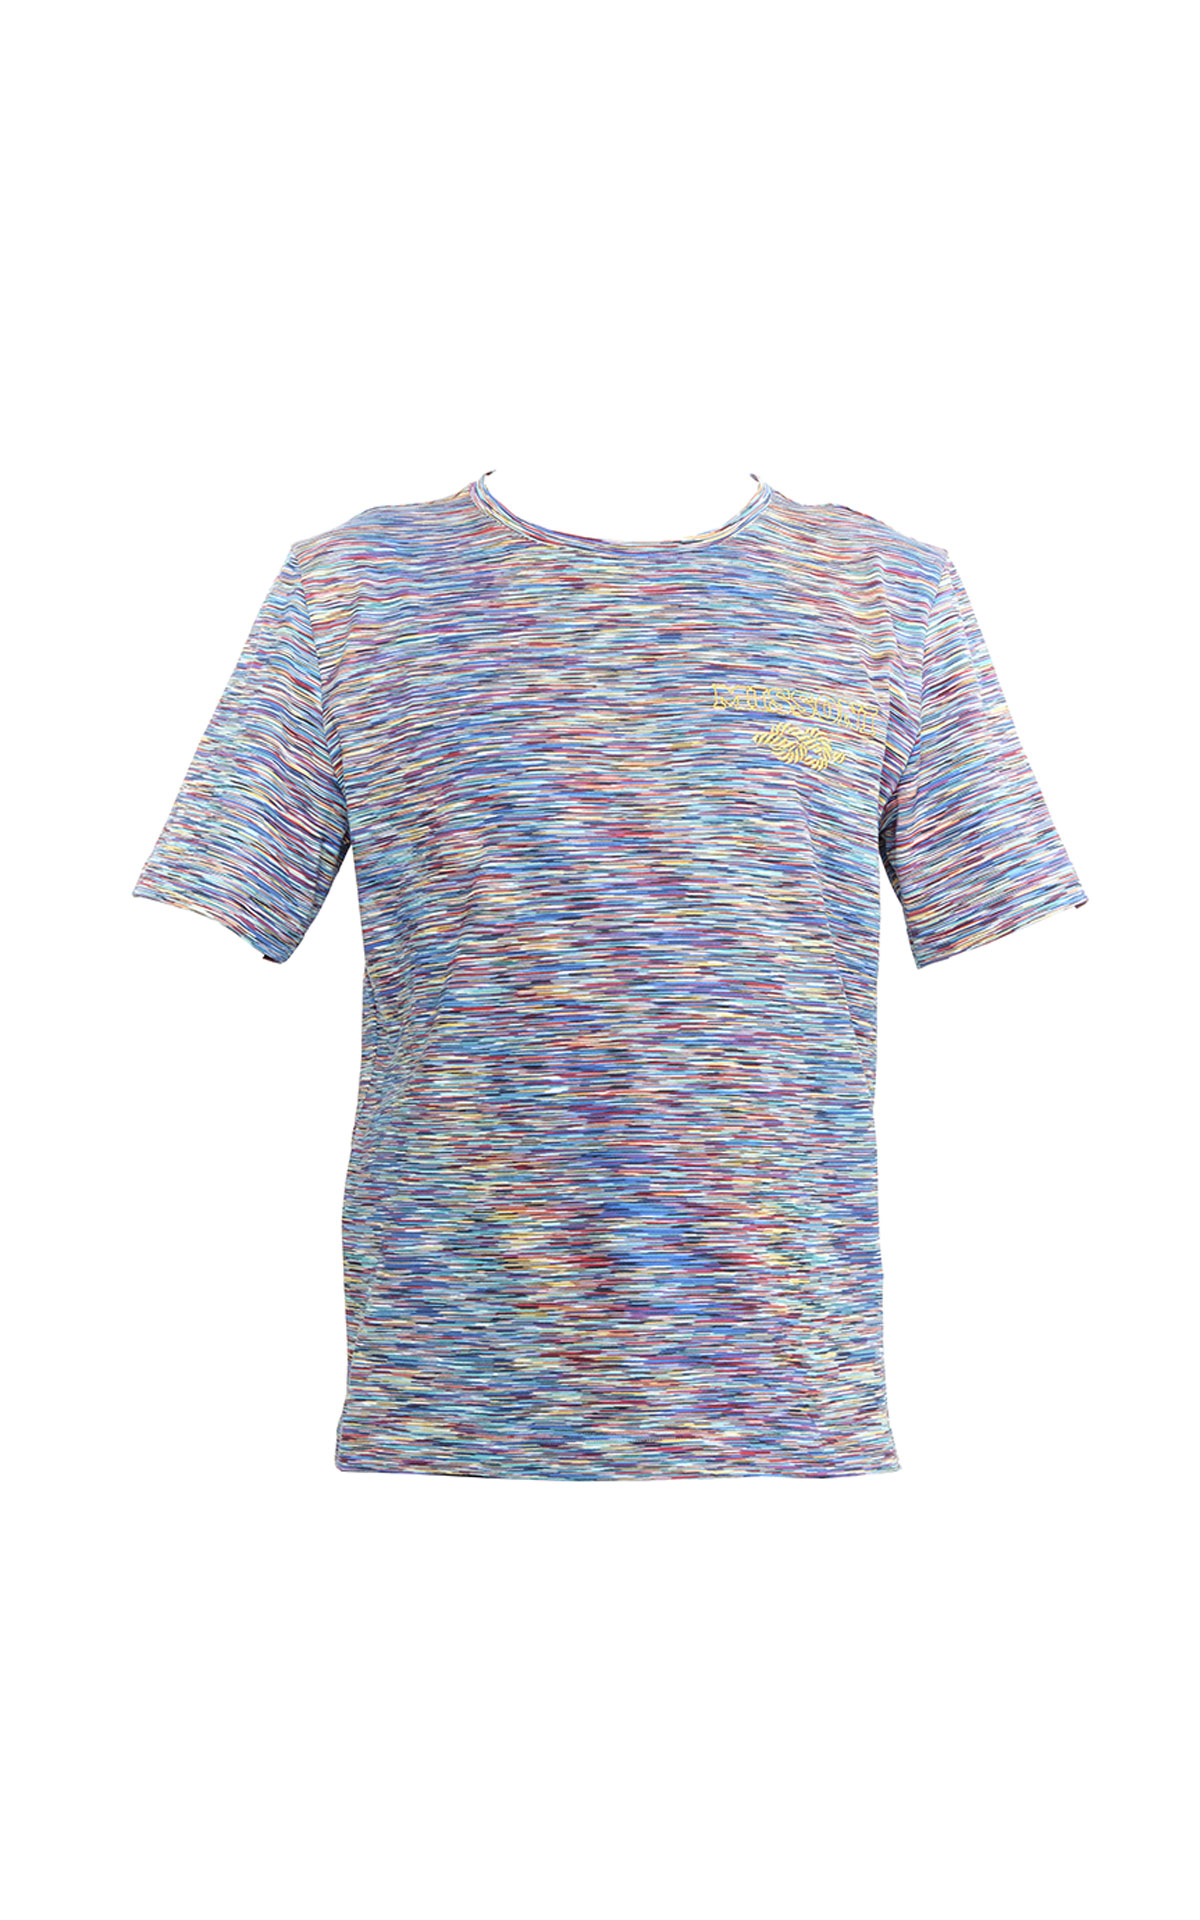 Missoni Men's t-shirt from Bicester Village